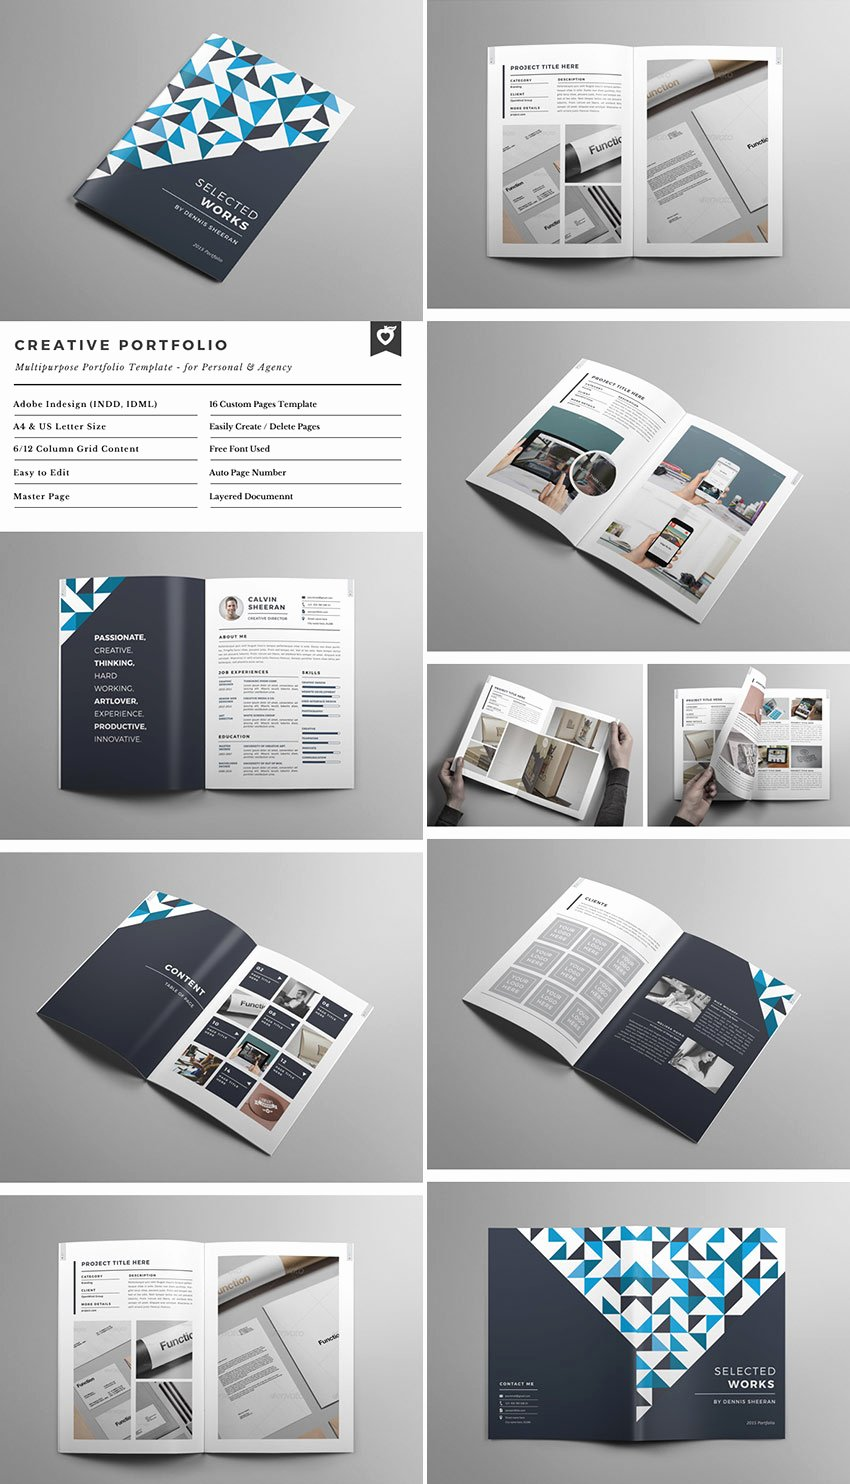 Free Indesign Portfolio Templates New 20 Best Indesign Brochure Templates for Creative